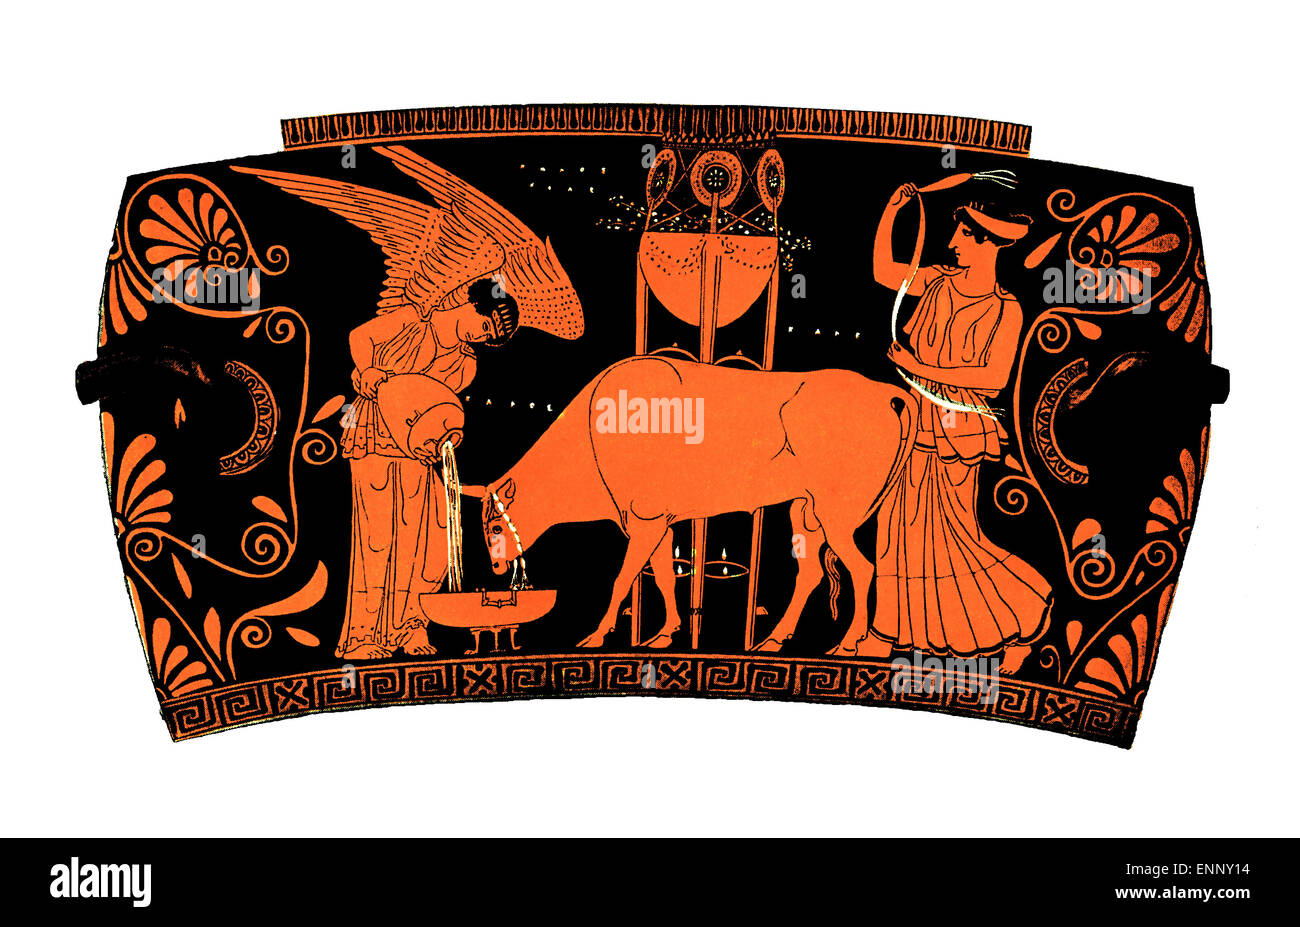 Antique greek terra-cotta vase theme: democracy. People is ironically represented by an ox, a winged goddess gives - Stock Image